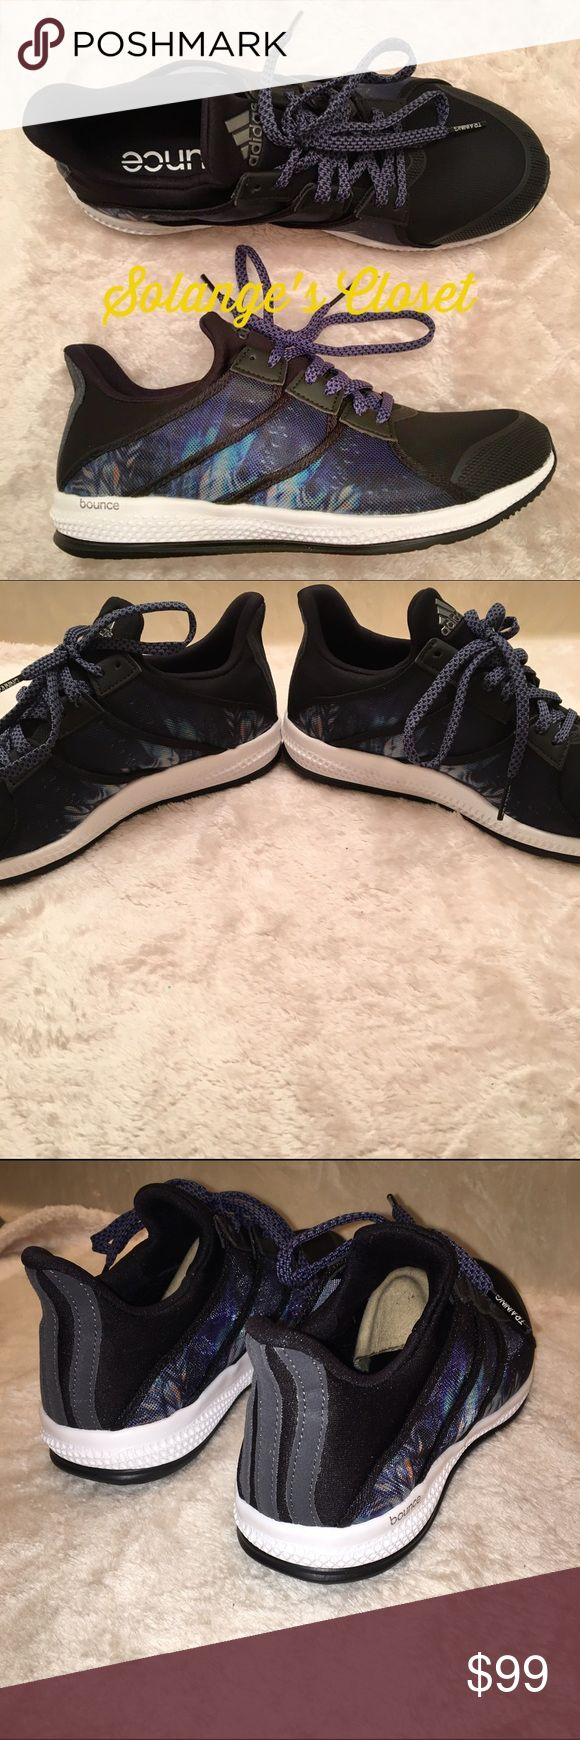 ADIDAS BOUNCE SNEAKERS -RARE!  -BRAND NEW! -NO FLAWS! -DO NOT ASK LOWEST OR SUBMIT AN OFFER IN THE COMMENTS!  -I ACCEPT REASONABLE OFFERS THROUGH OFFER BUTTON ONLY!  -I CAN'T ACCEPT AN OFFER IF YOU DON'T MAKE ONE😊  ‼️LOWBALLERS- MY ITEMS ARE NOT FREE & POSH DEDUCTS 20%! MOST OF MY ITEMS ARE RARE & IMPOSSIBLE TO FIND- PLEASE BE RESPECTFUL WHEN SUBMITTING AN OFFER‼️  🚨NO HOLDS🚨 🚨NO TRADES🚨  ALSO LISTED ON Ⓜ️ERCARI! Adidas Shoes Sneakers